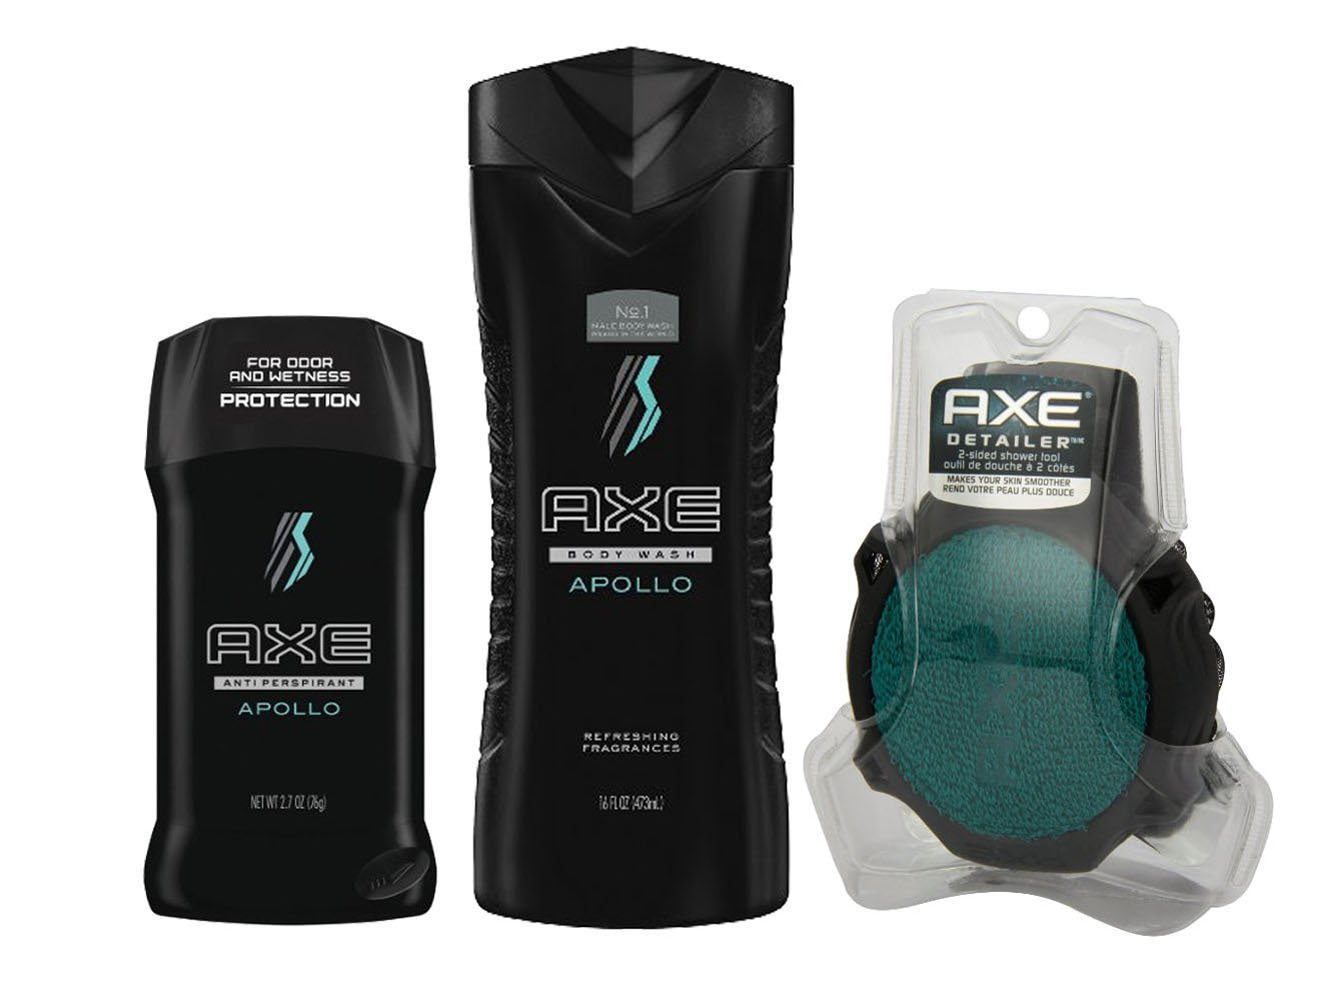 Axe Body Wash, Deodorant and 2-sided Detailer Bundle (3 items) (Appolo)